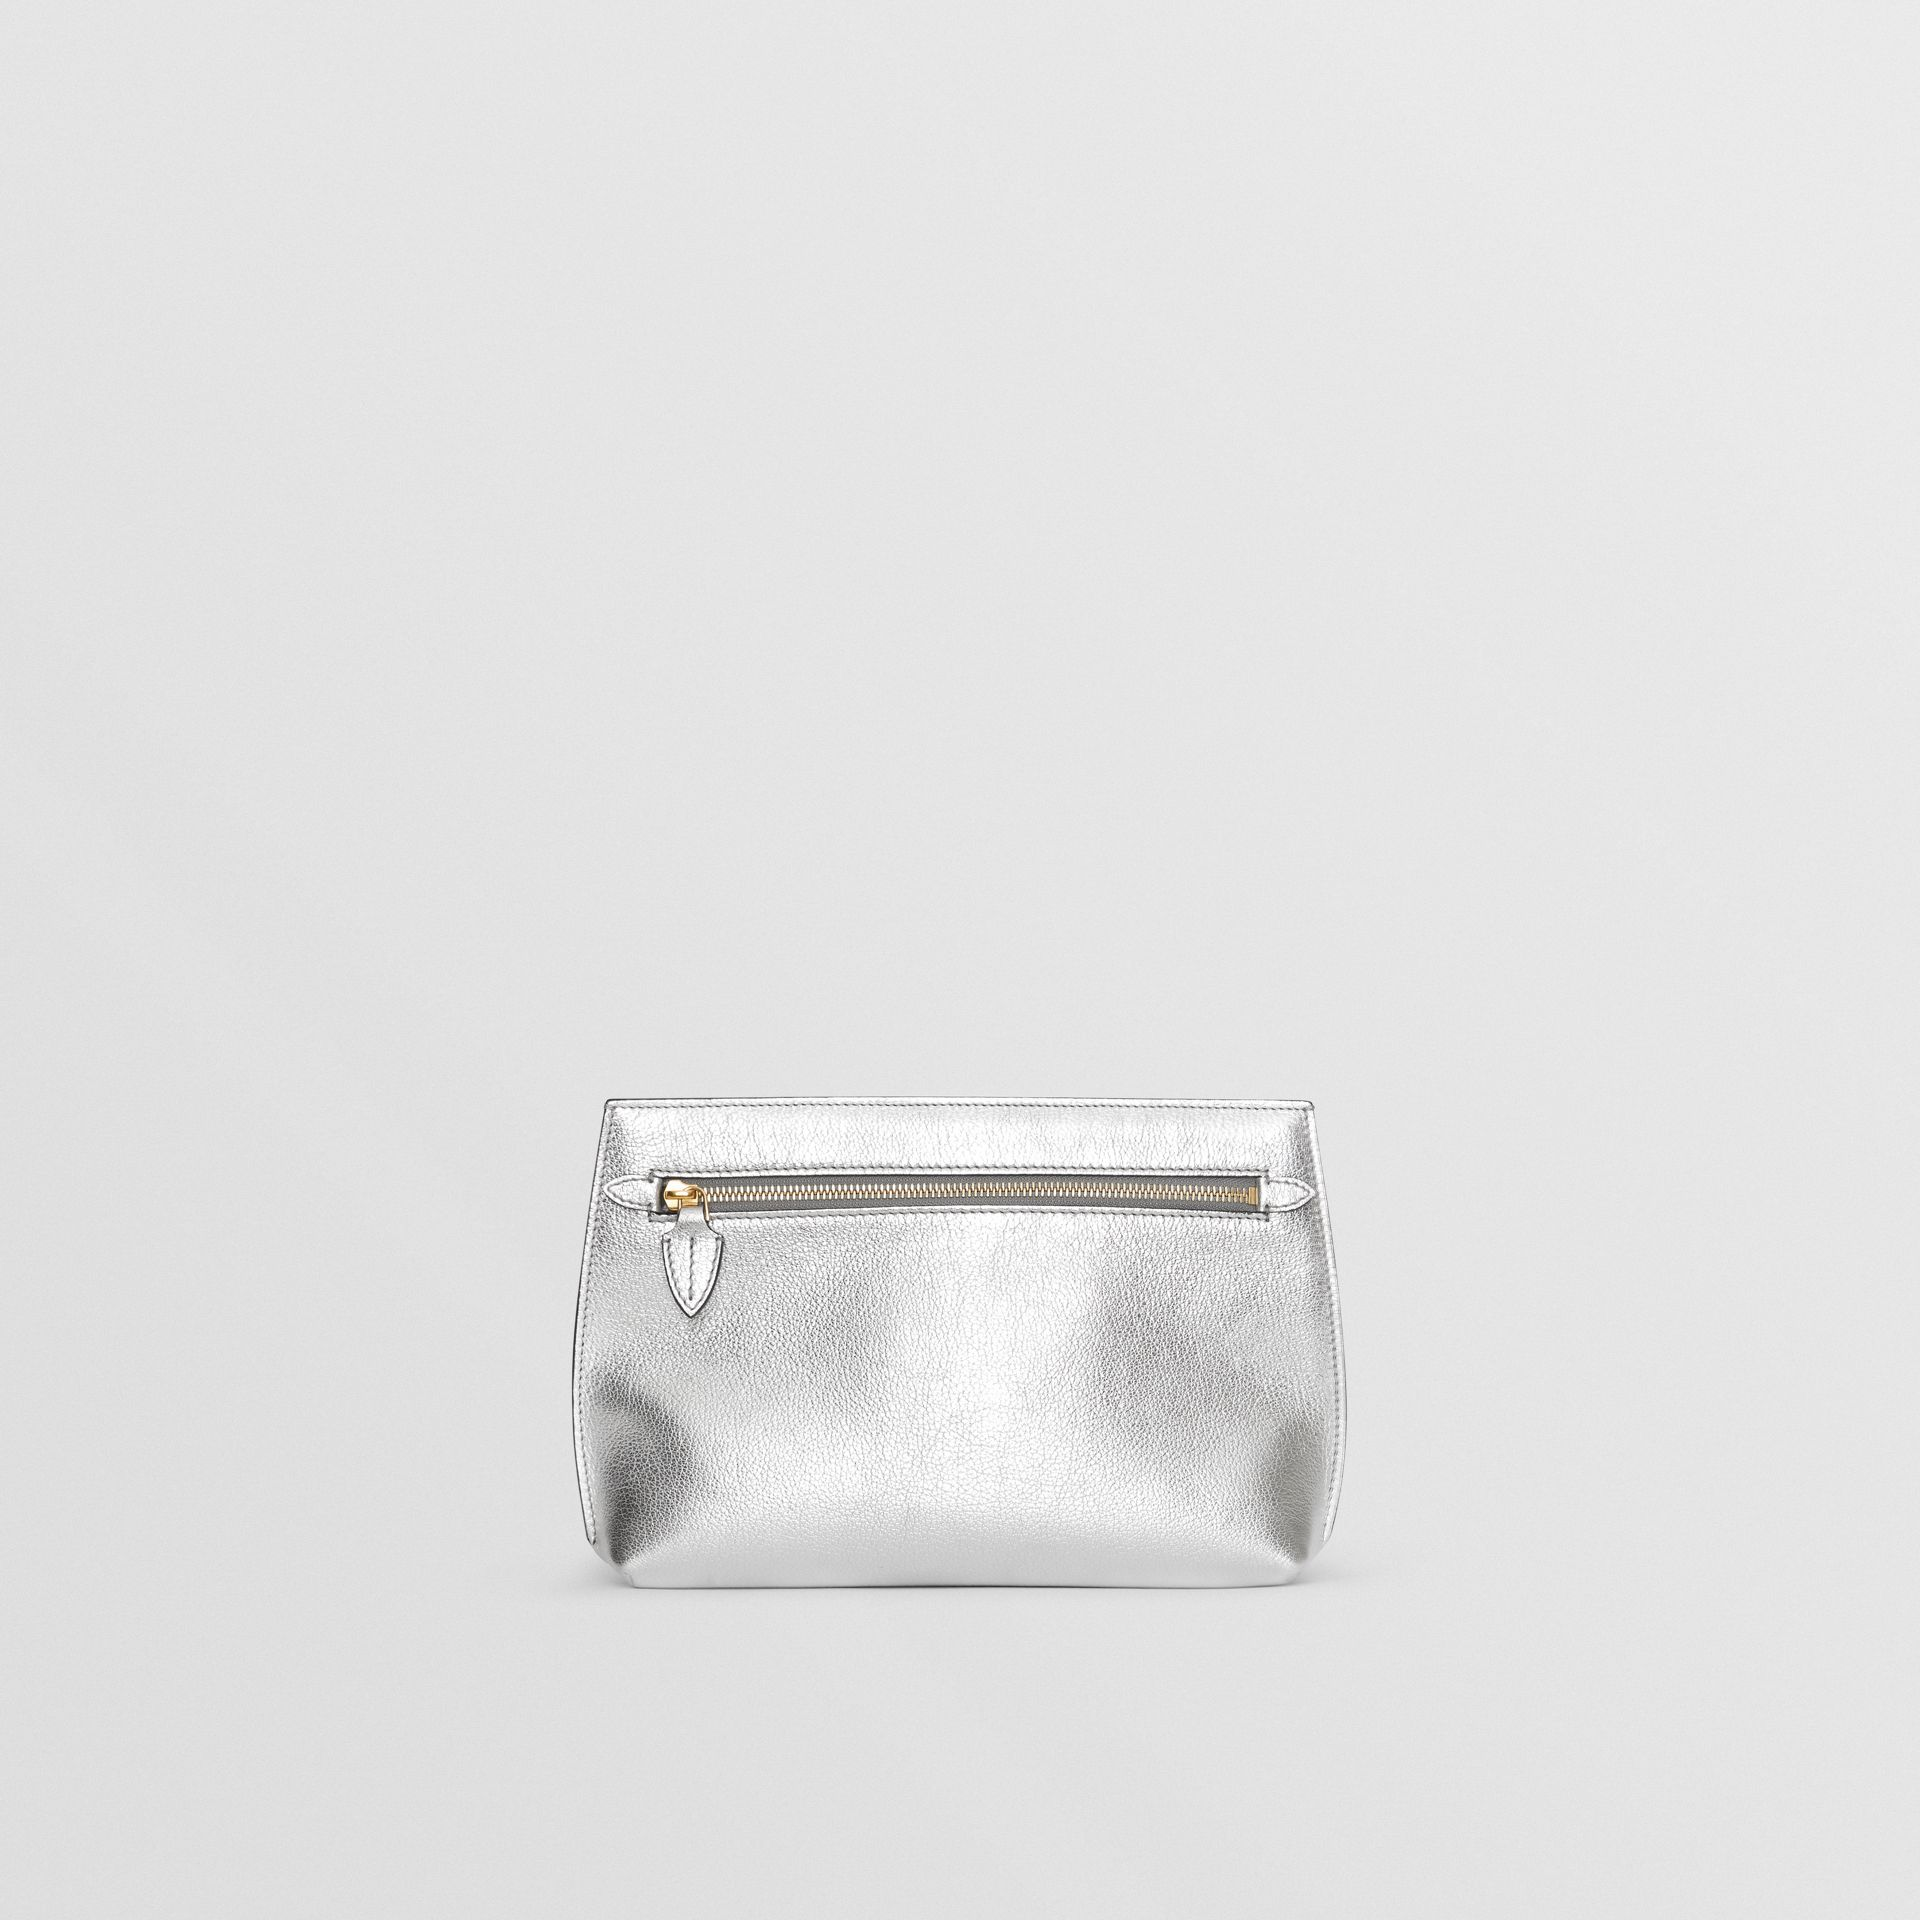 Metallic Leather Wristlet Clutch in Silver - Women | Burberry Australia - gallery image 7